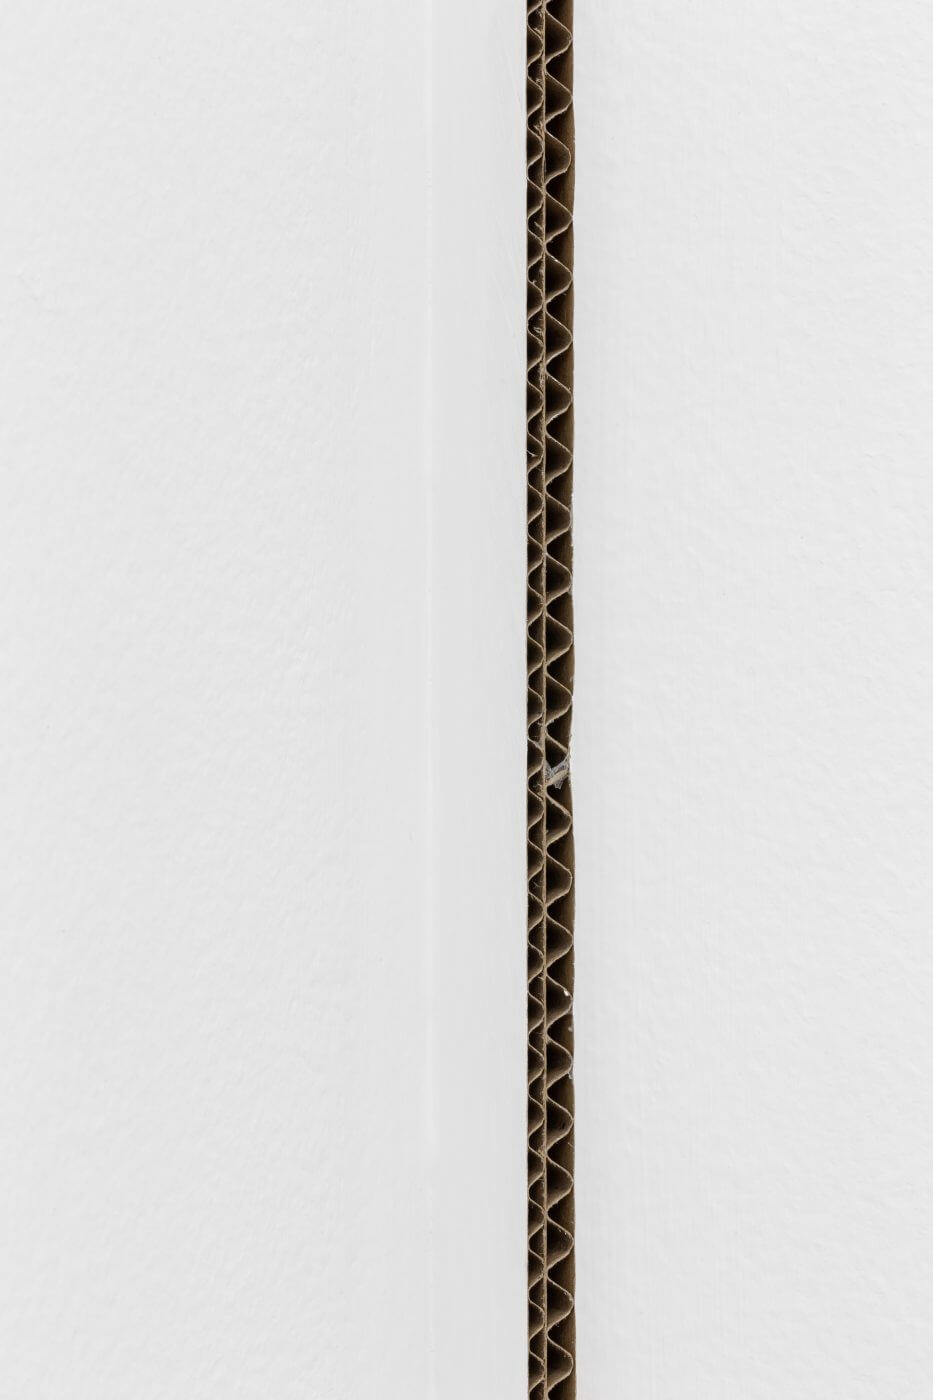 Carlos Bunga, Linha (vertical), 2017 (2021) (detail). Latex and glue on carboard and wall. 286,5 x 0,8 x 3 cm